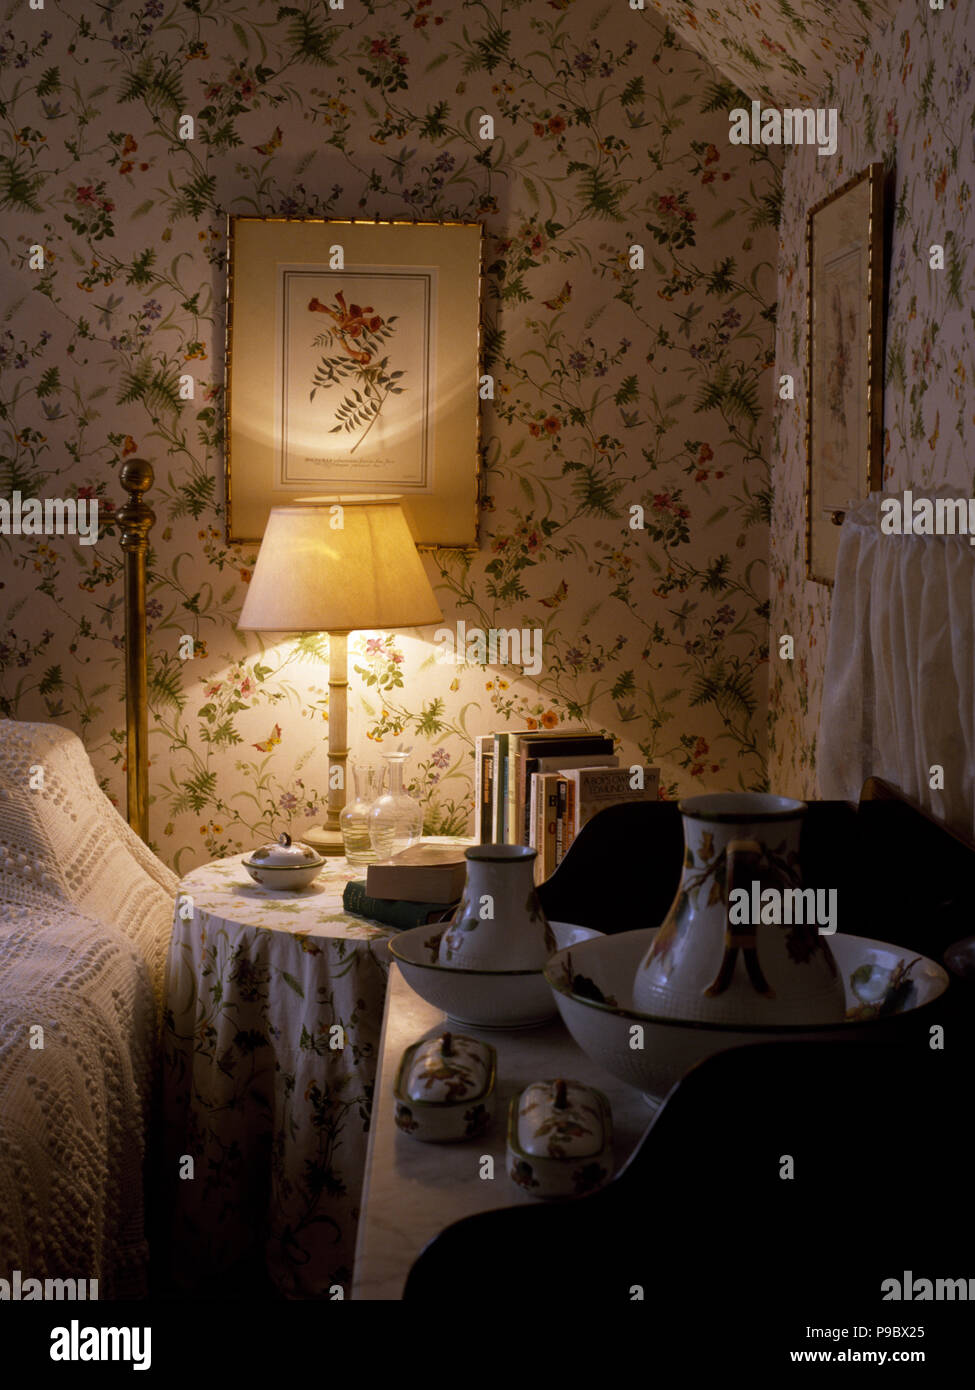 Lighted Lamp On Bedside Table In Victorian Style Bedroom With Floral  Wallpaper